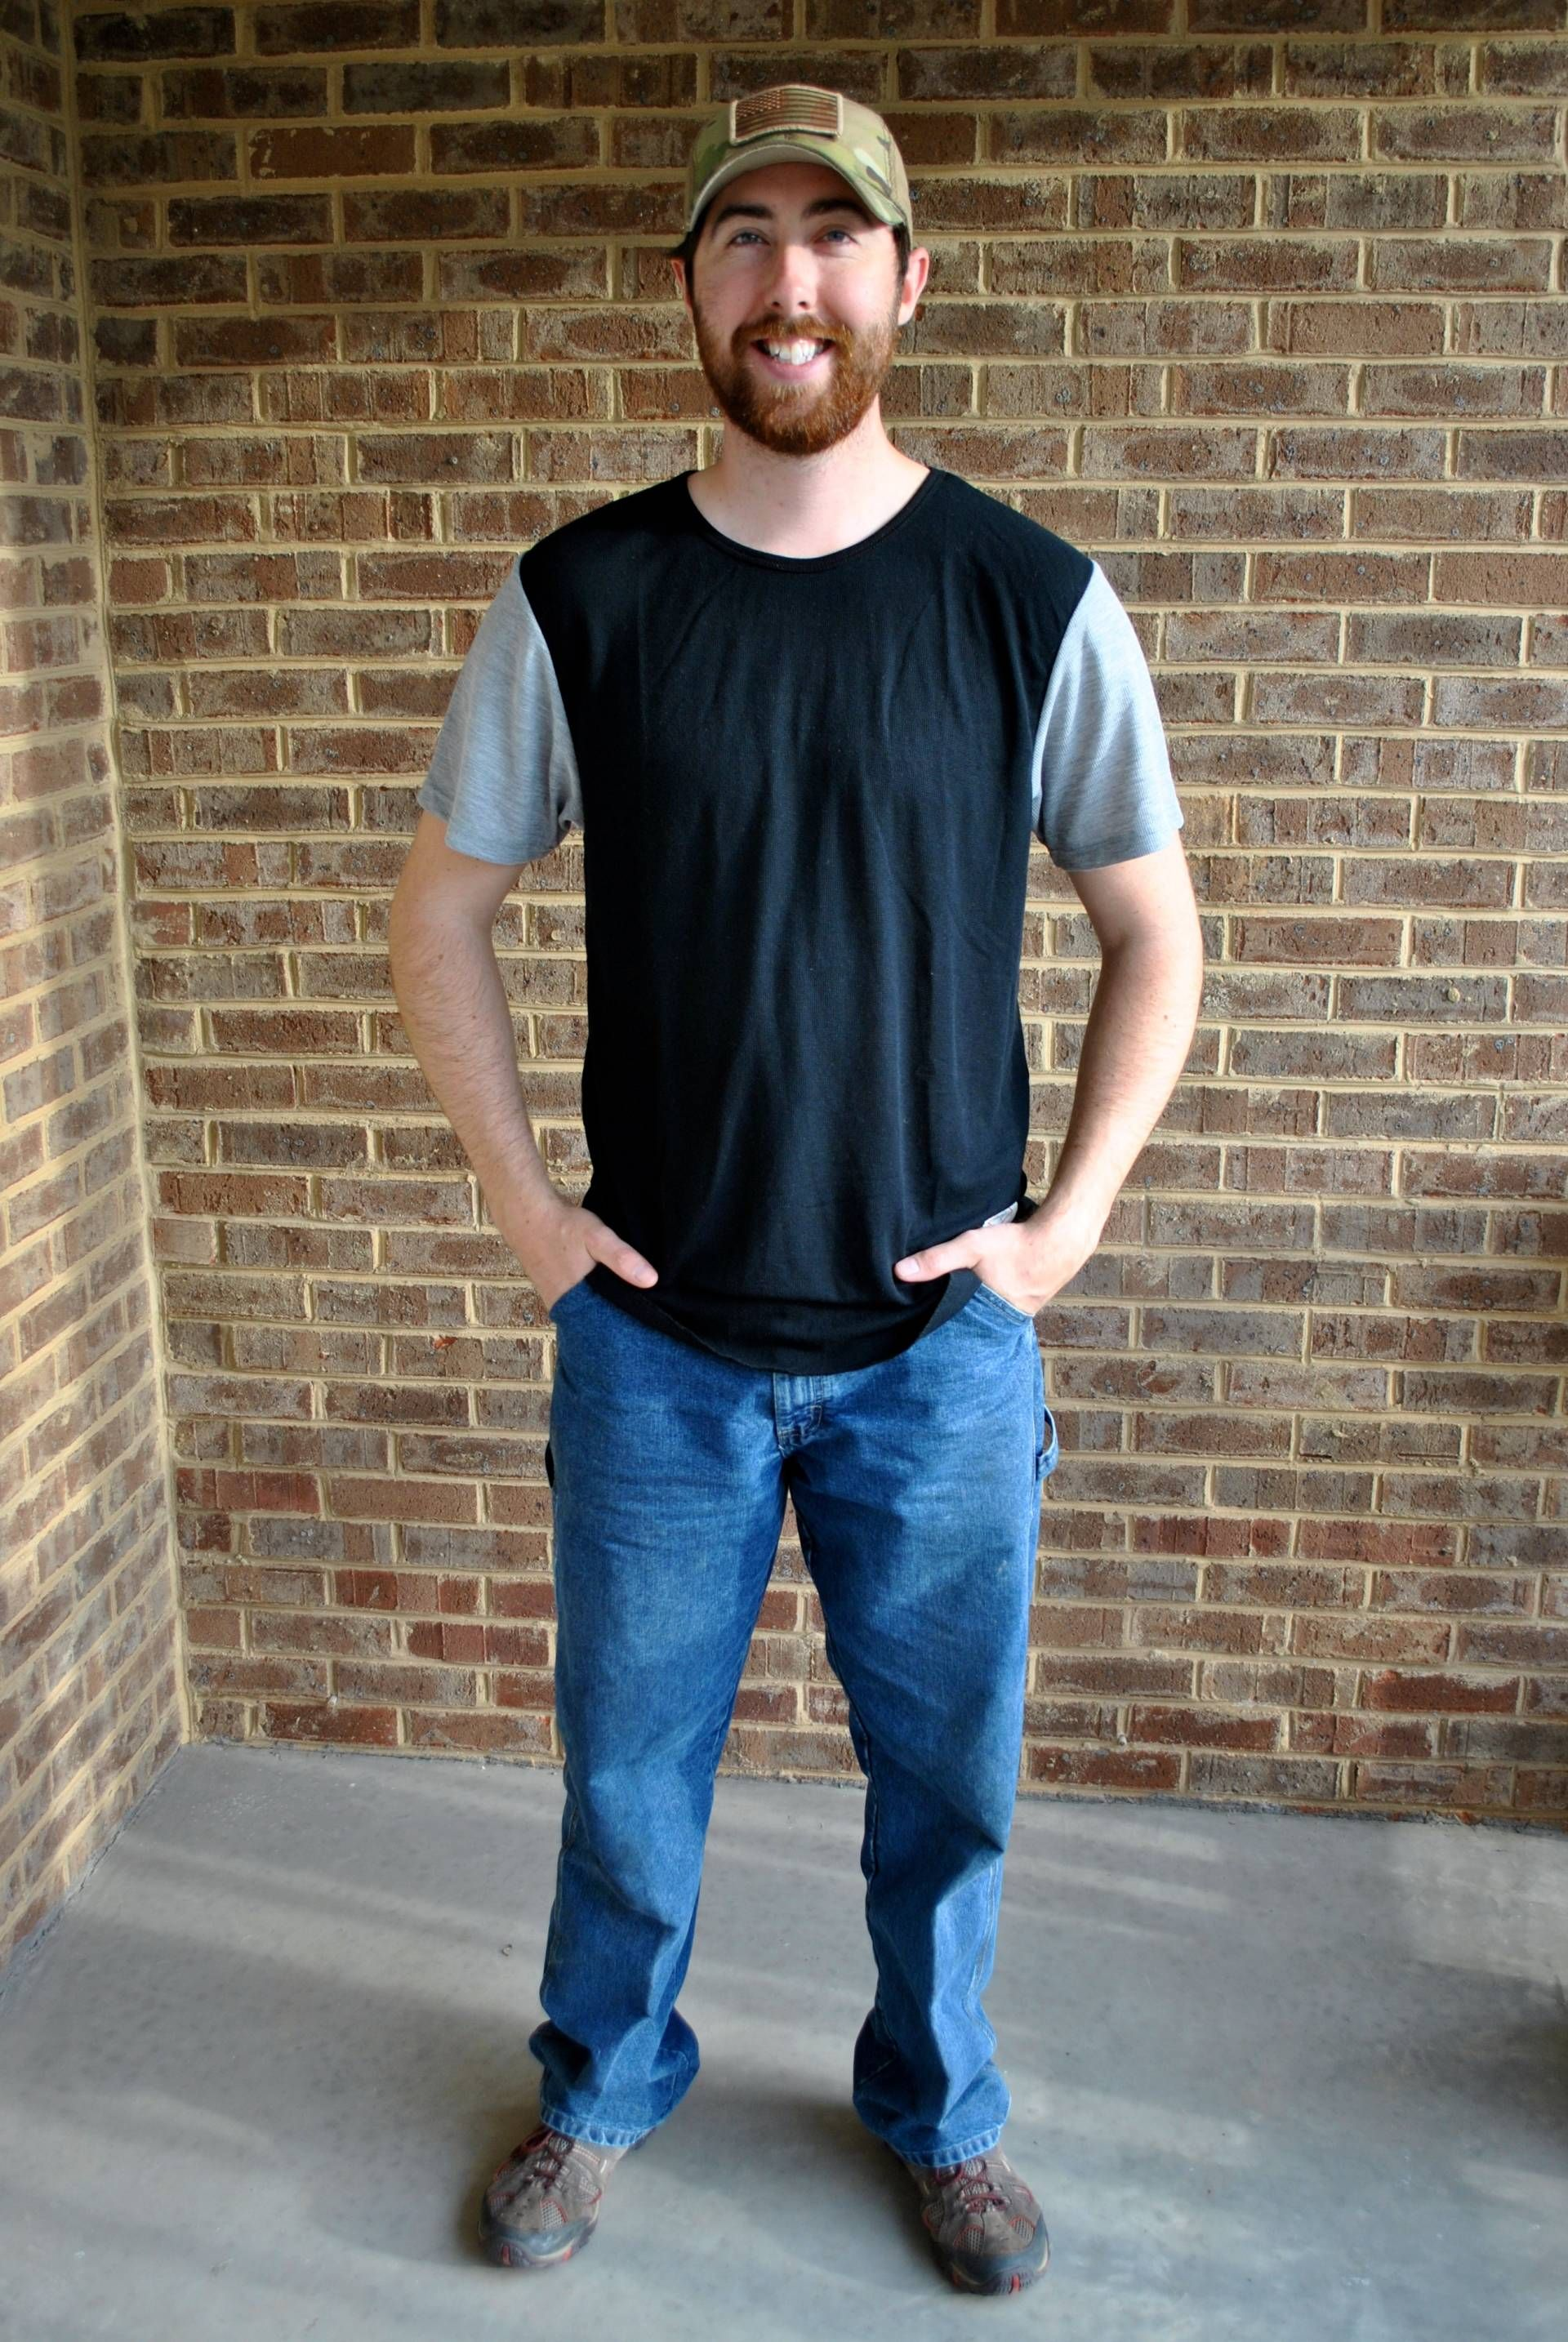 67f1e9faf8 Trendy Butler: My Husband's Turn to Be Styled | Kinetix Casual Luxury Tee